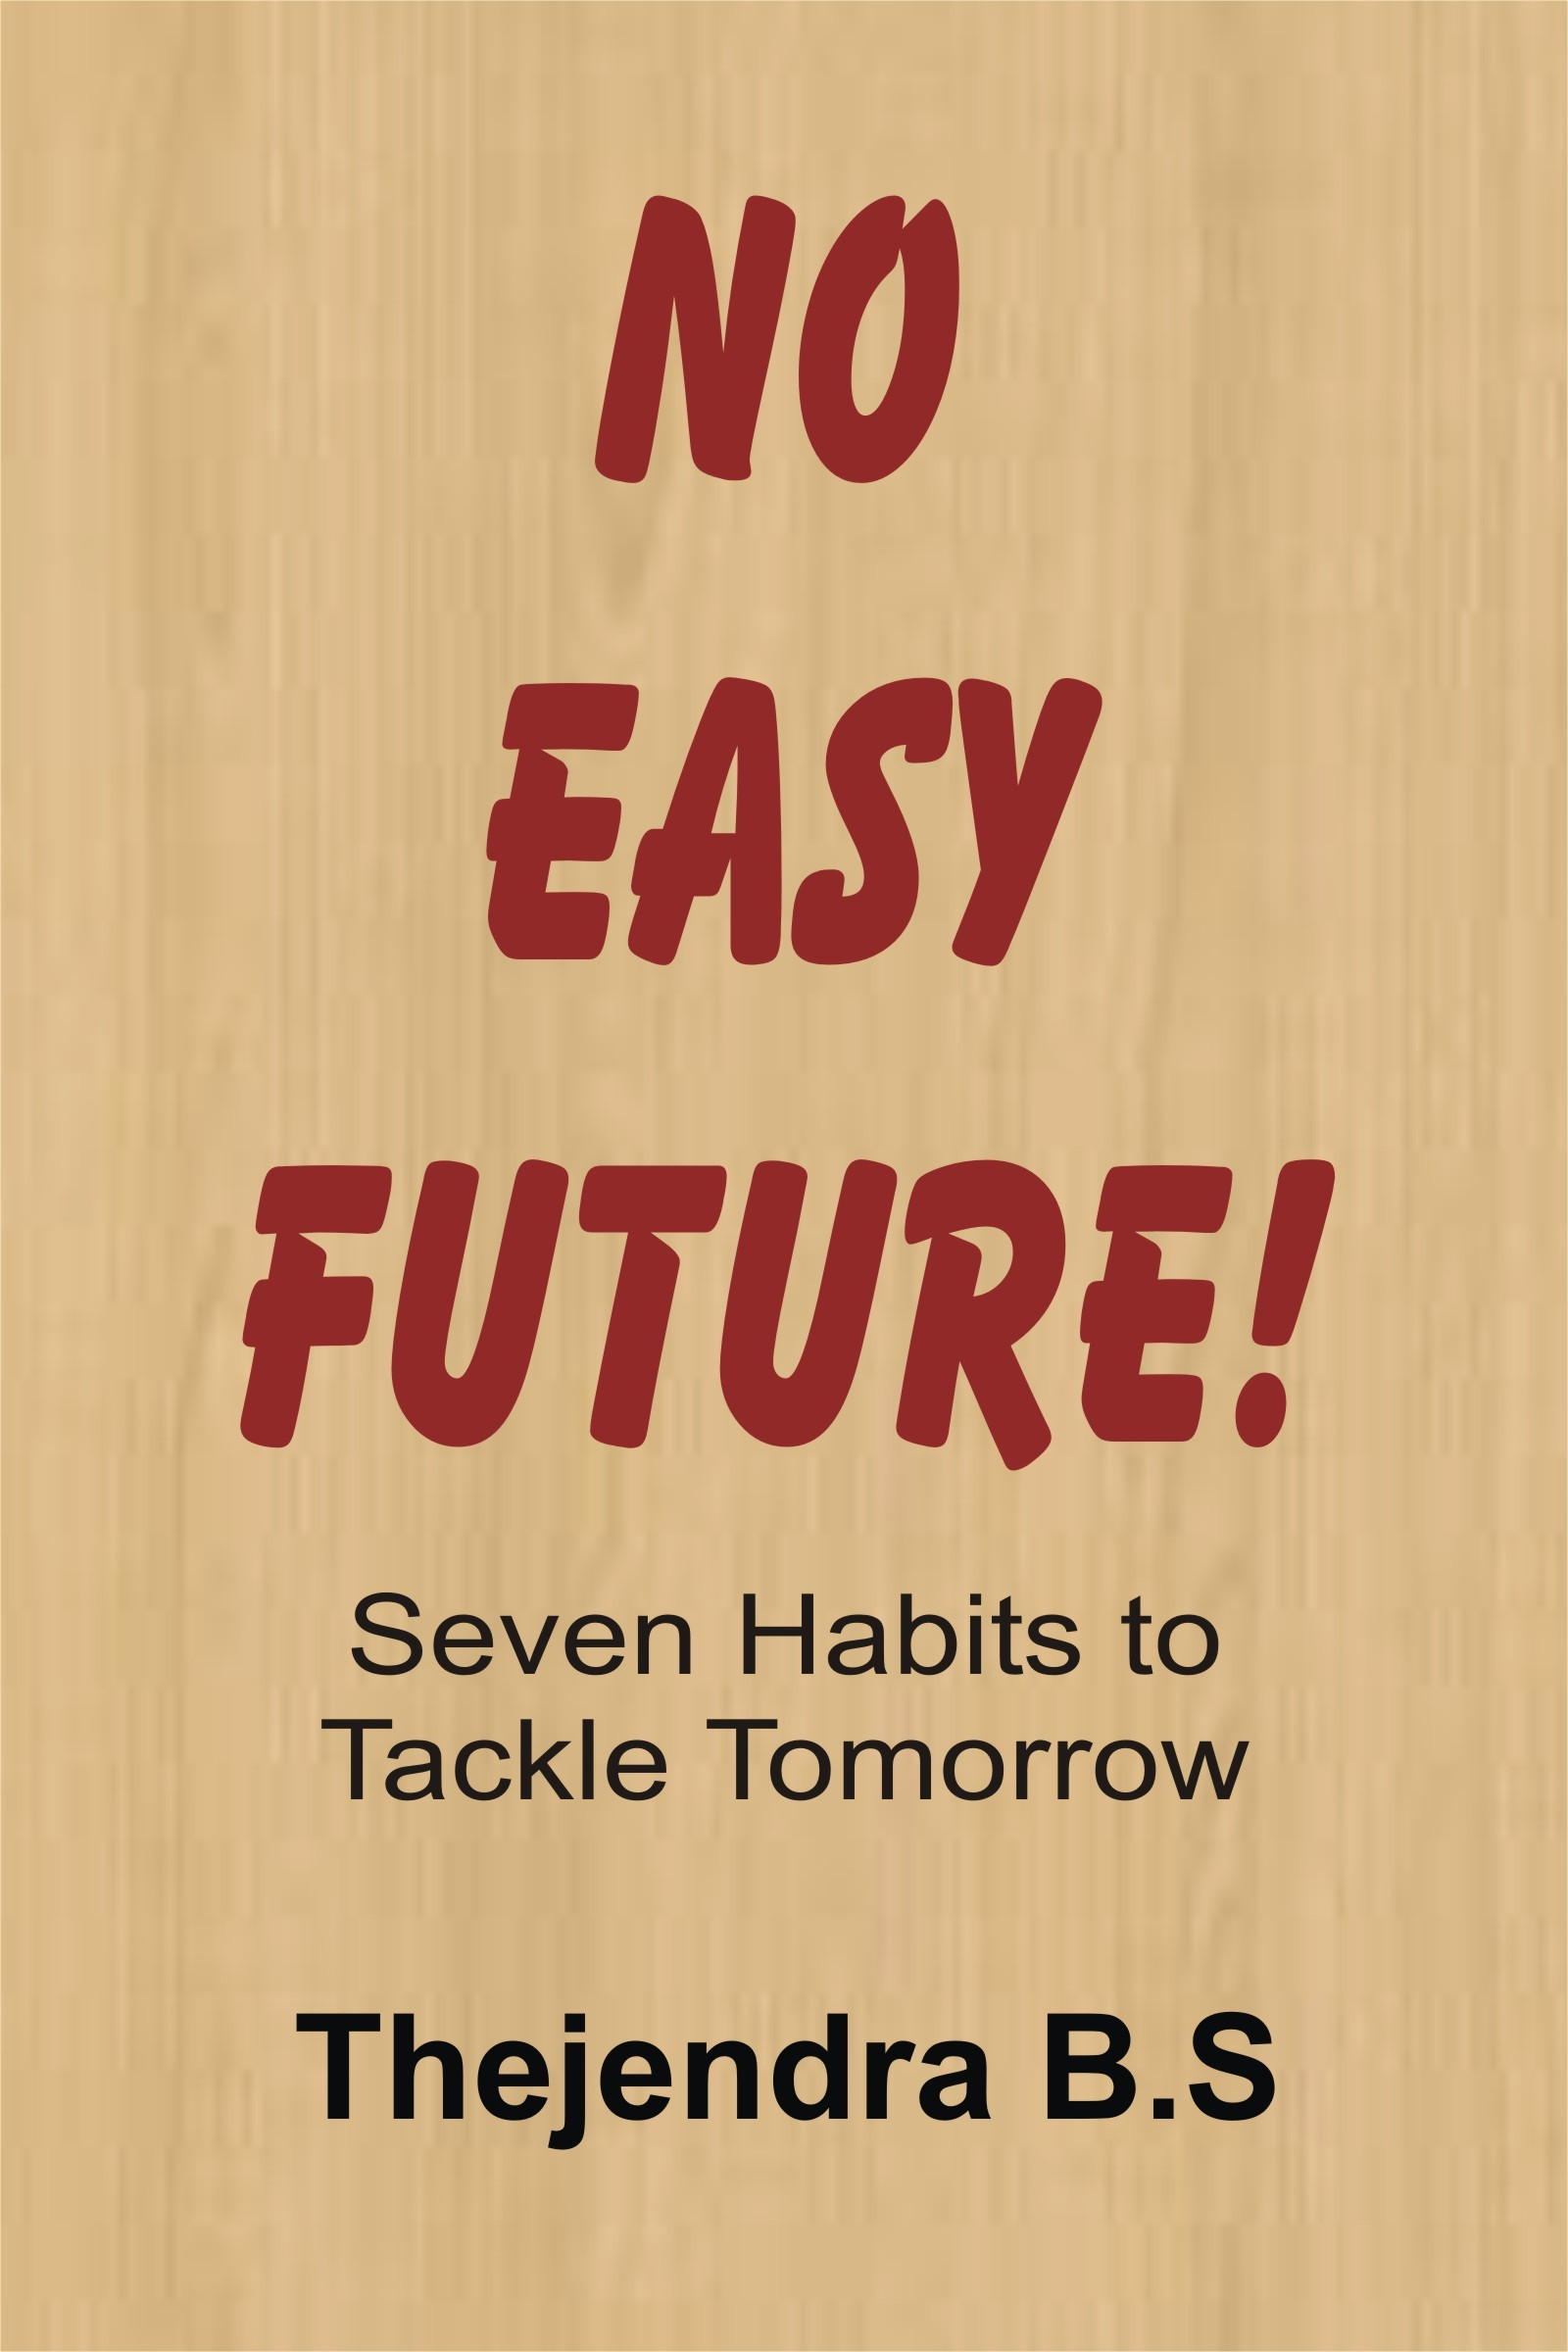 No Easy Future!: Seven Habits to Tackle Tomorrow